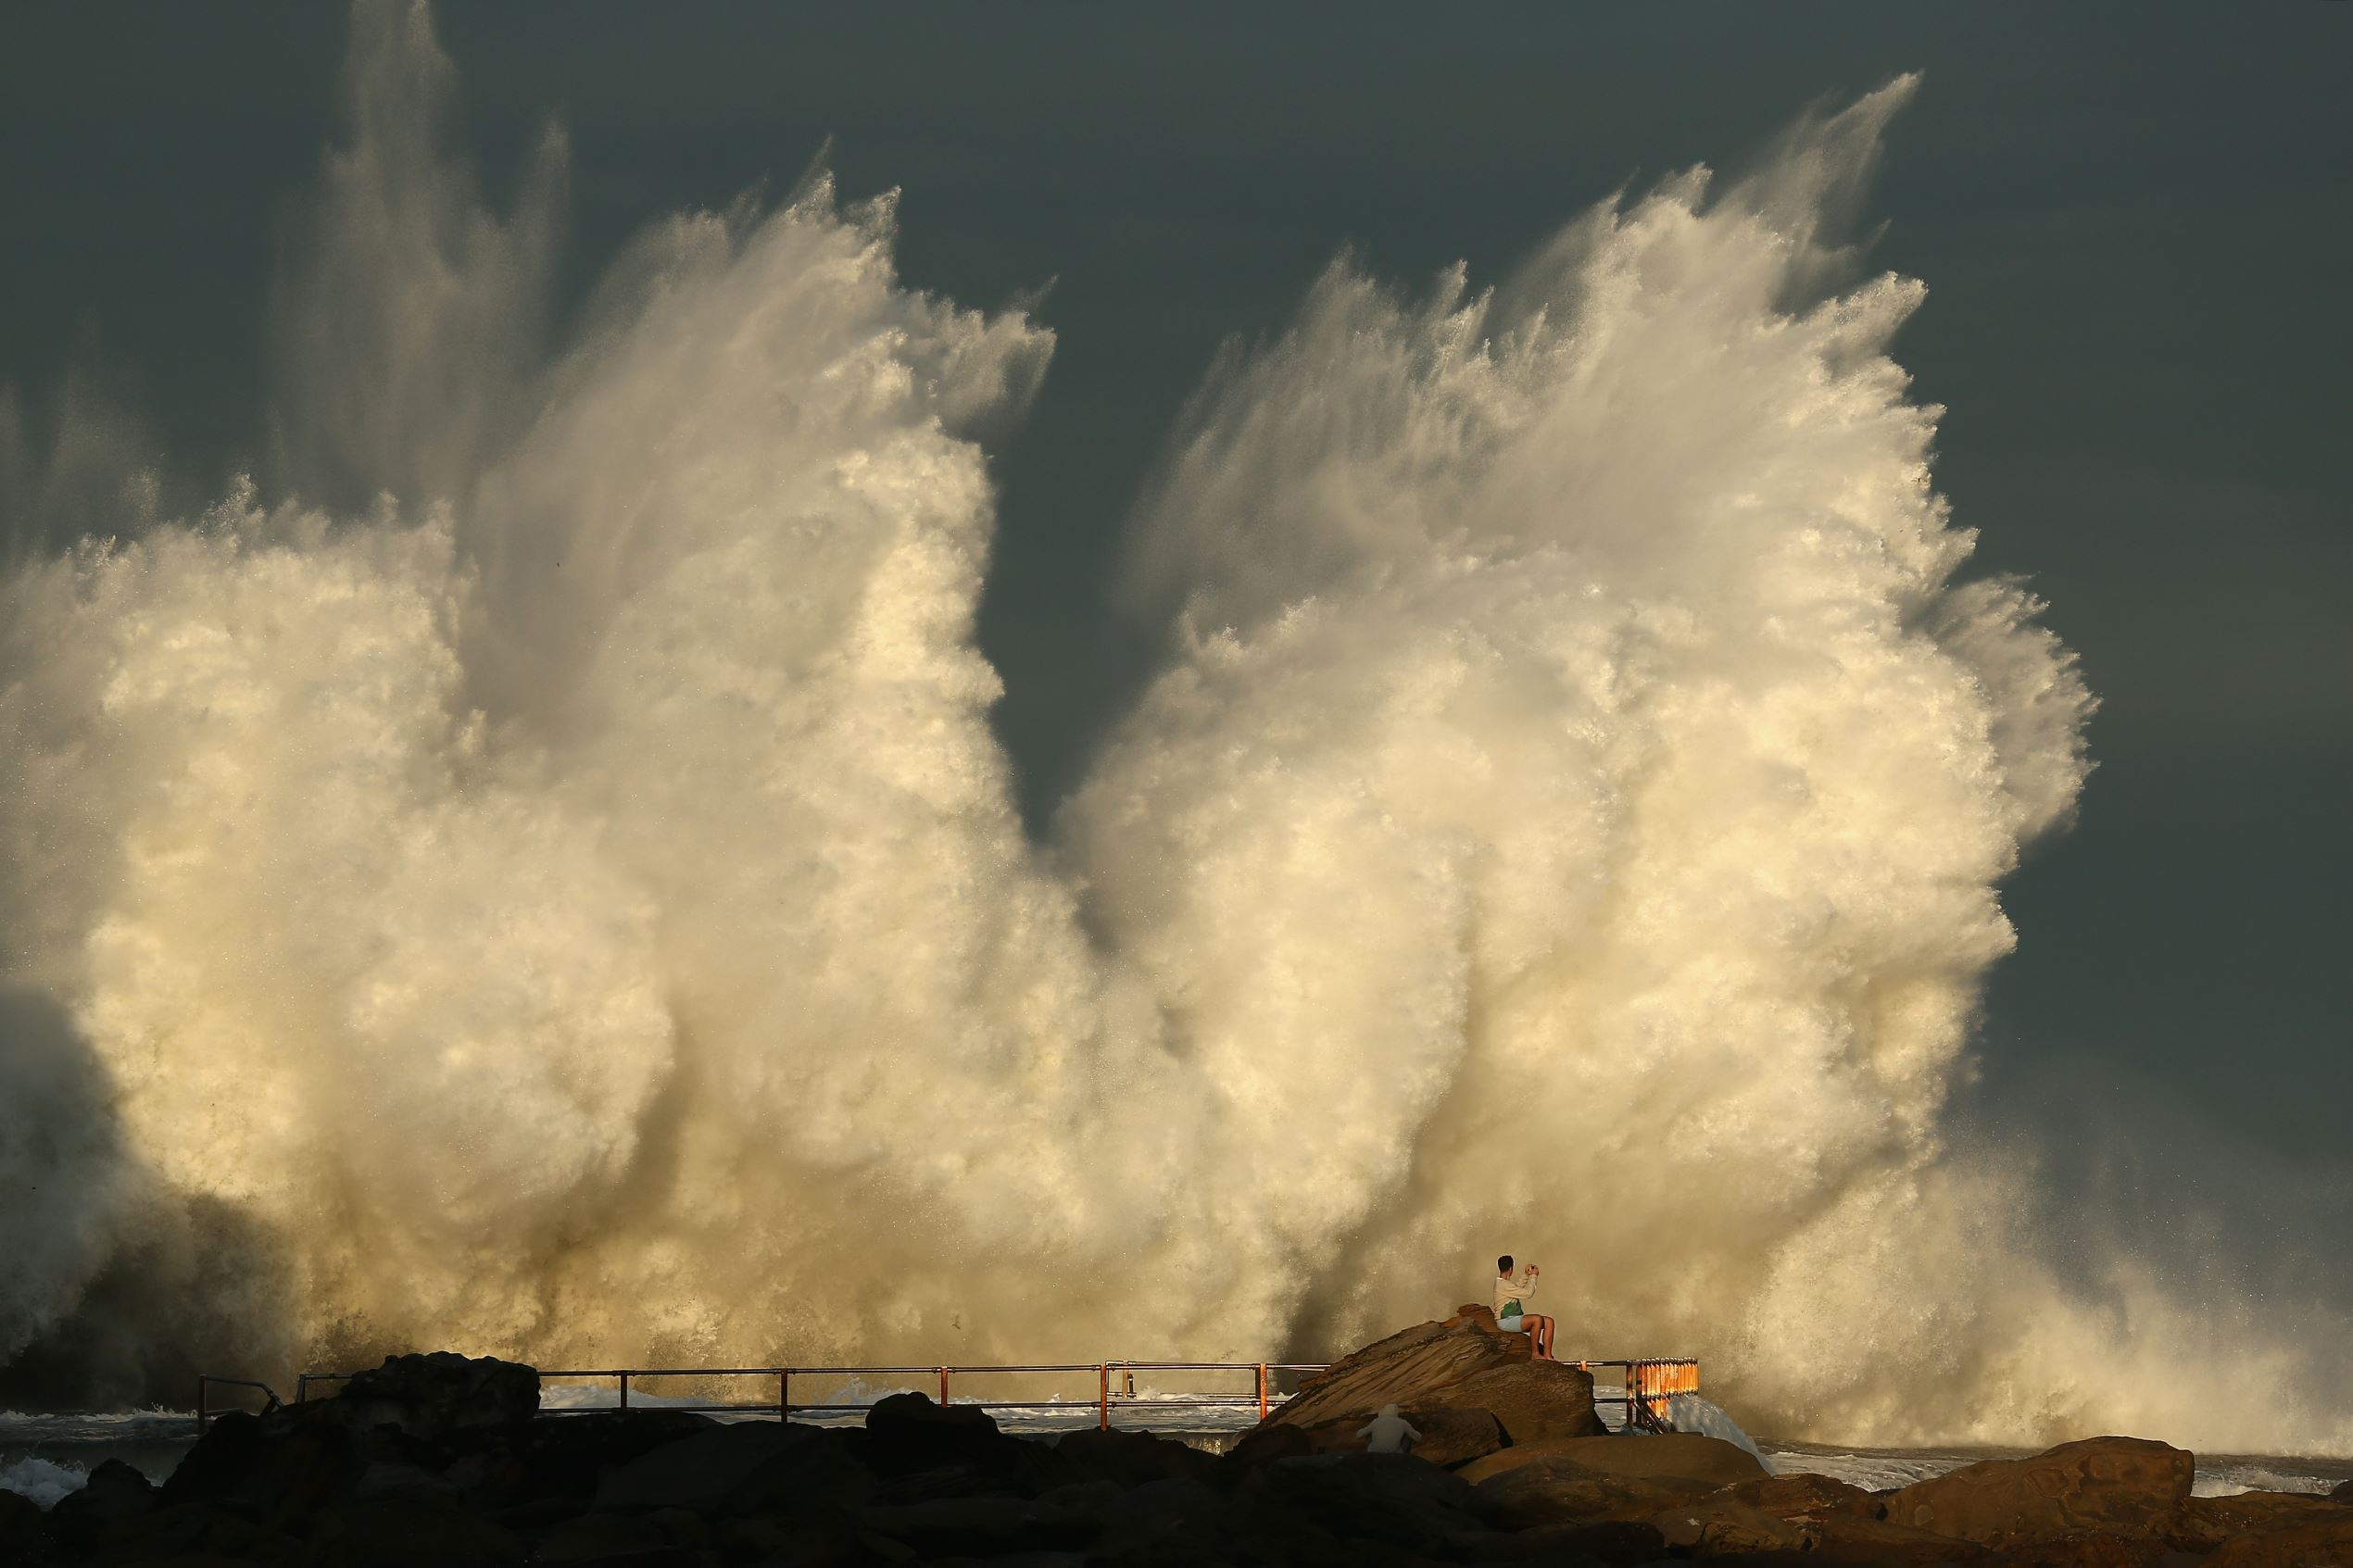 Слайд 53 из 86: SYDNEY, AUSTRALIA - JUNE 06:  A man watches a wave hit a rock pool at Curl Curl beach as large swell hits the East Coast of Australia on June 6, 2016 in Sydney, Australia. Torrential rain over the weekend saw streets and homes flooded while wind gusts up